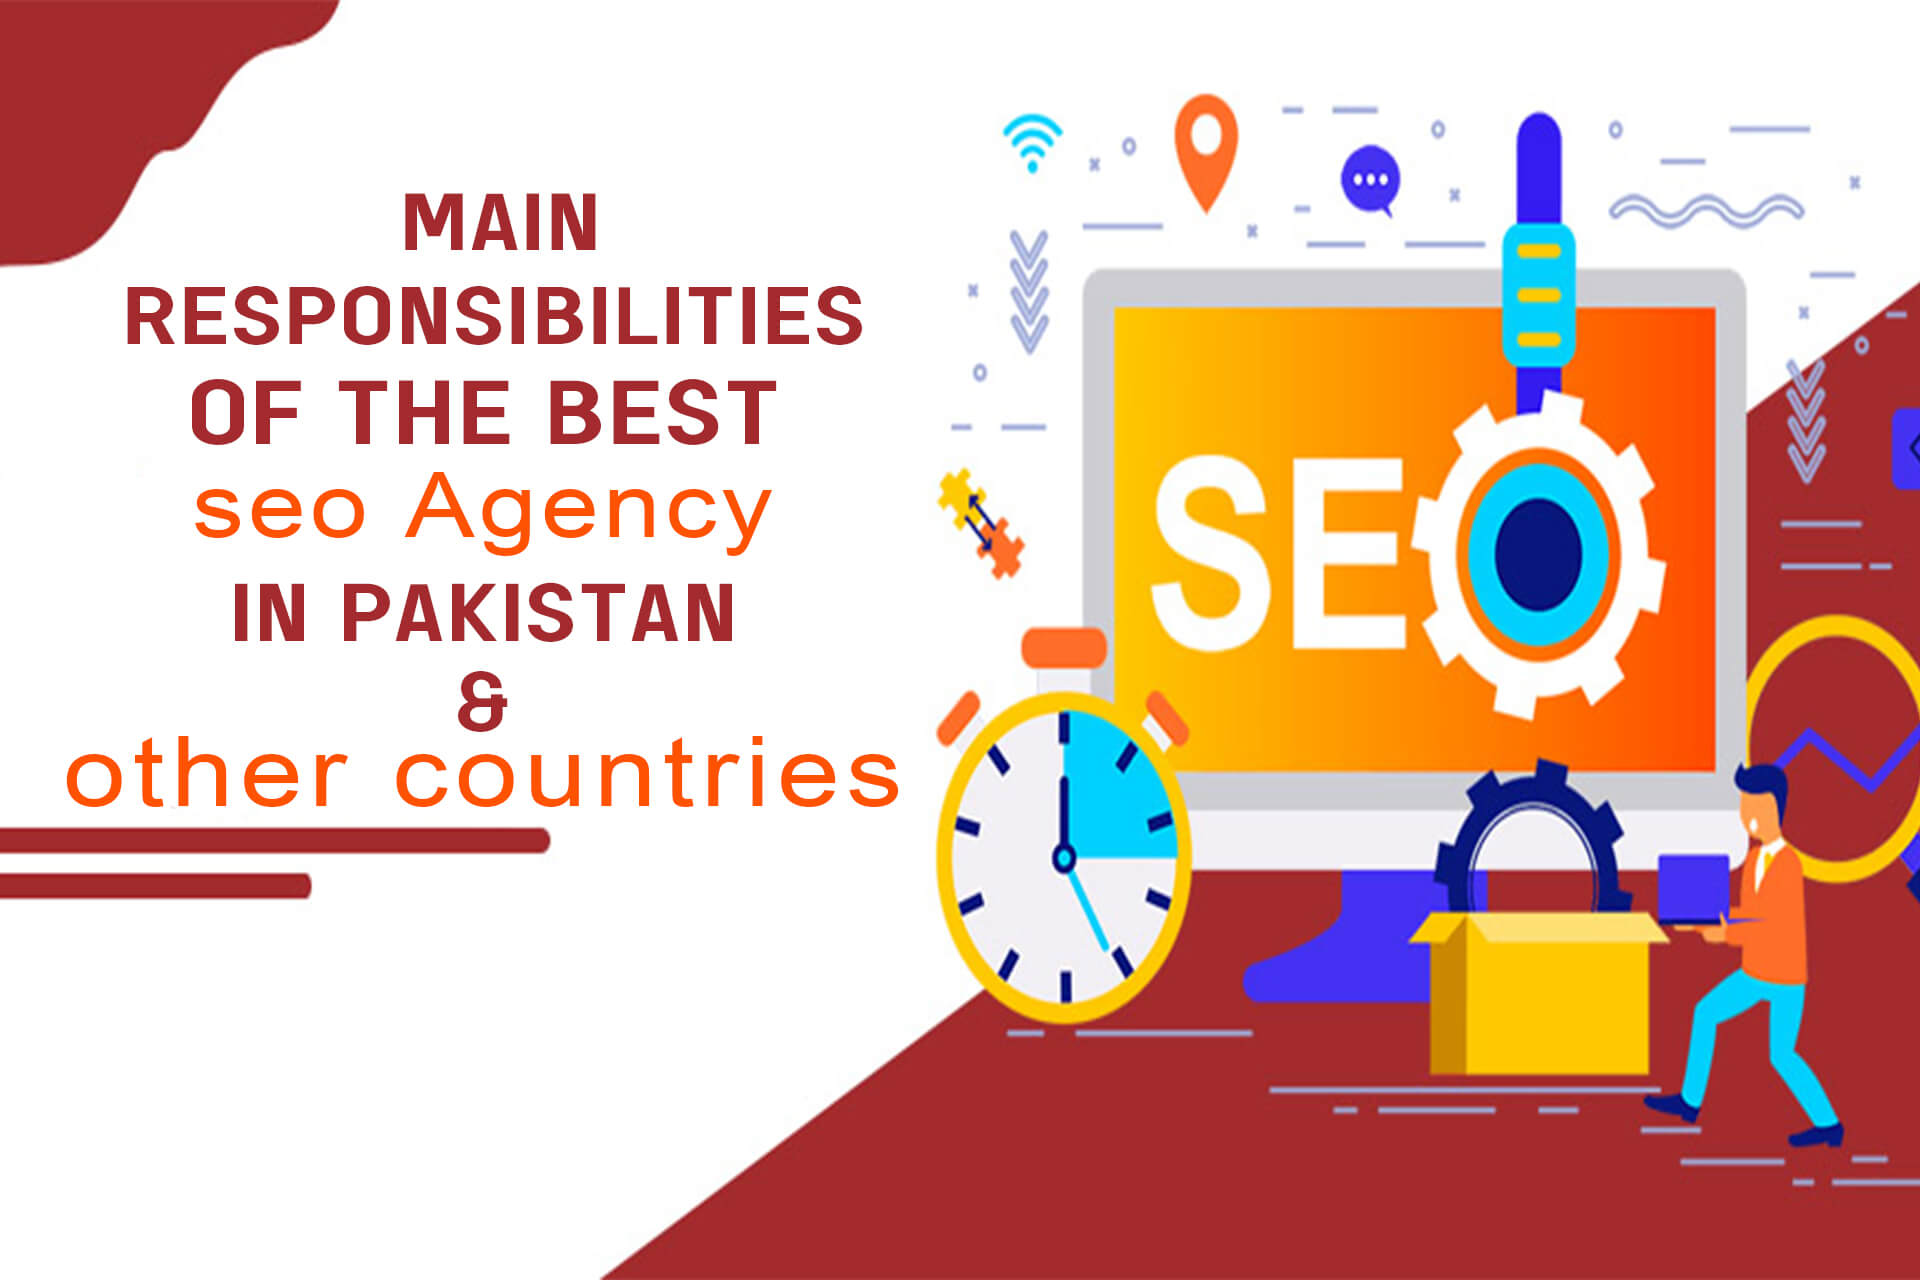 Main Responsibilities Of The Best SEO Agency In Pakistan & Other Countries